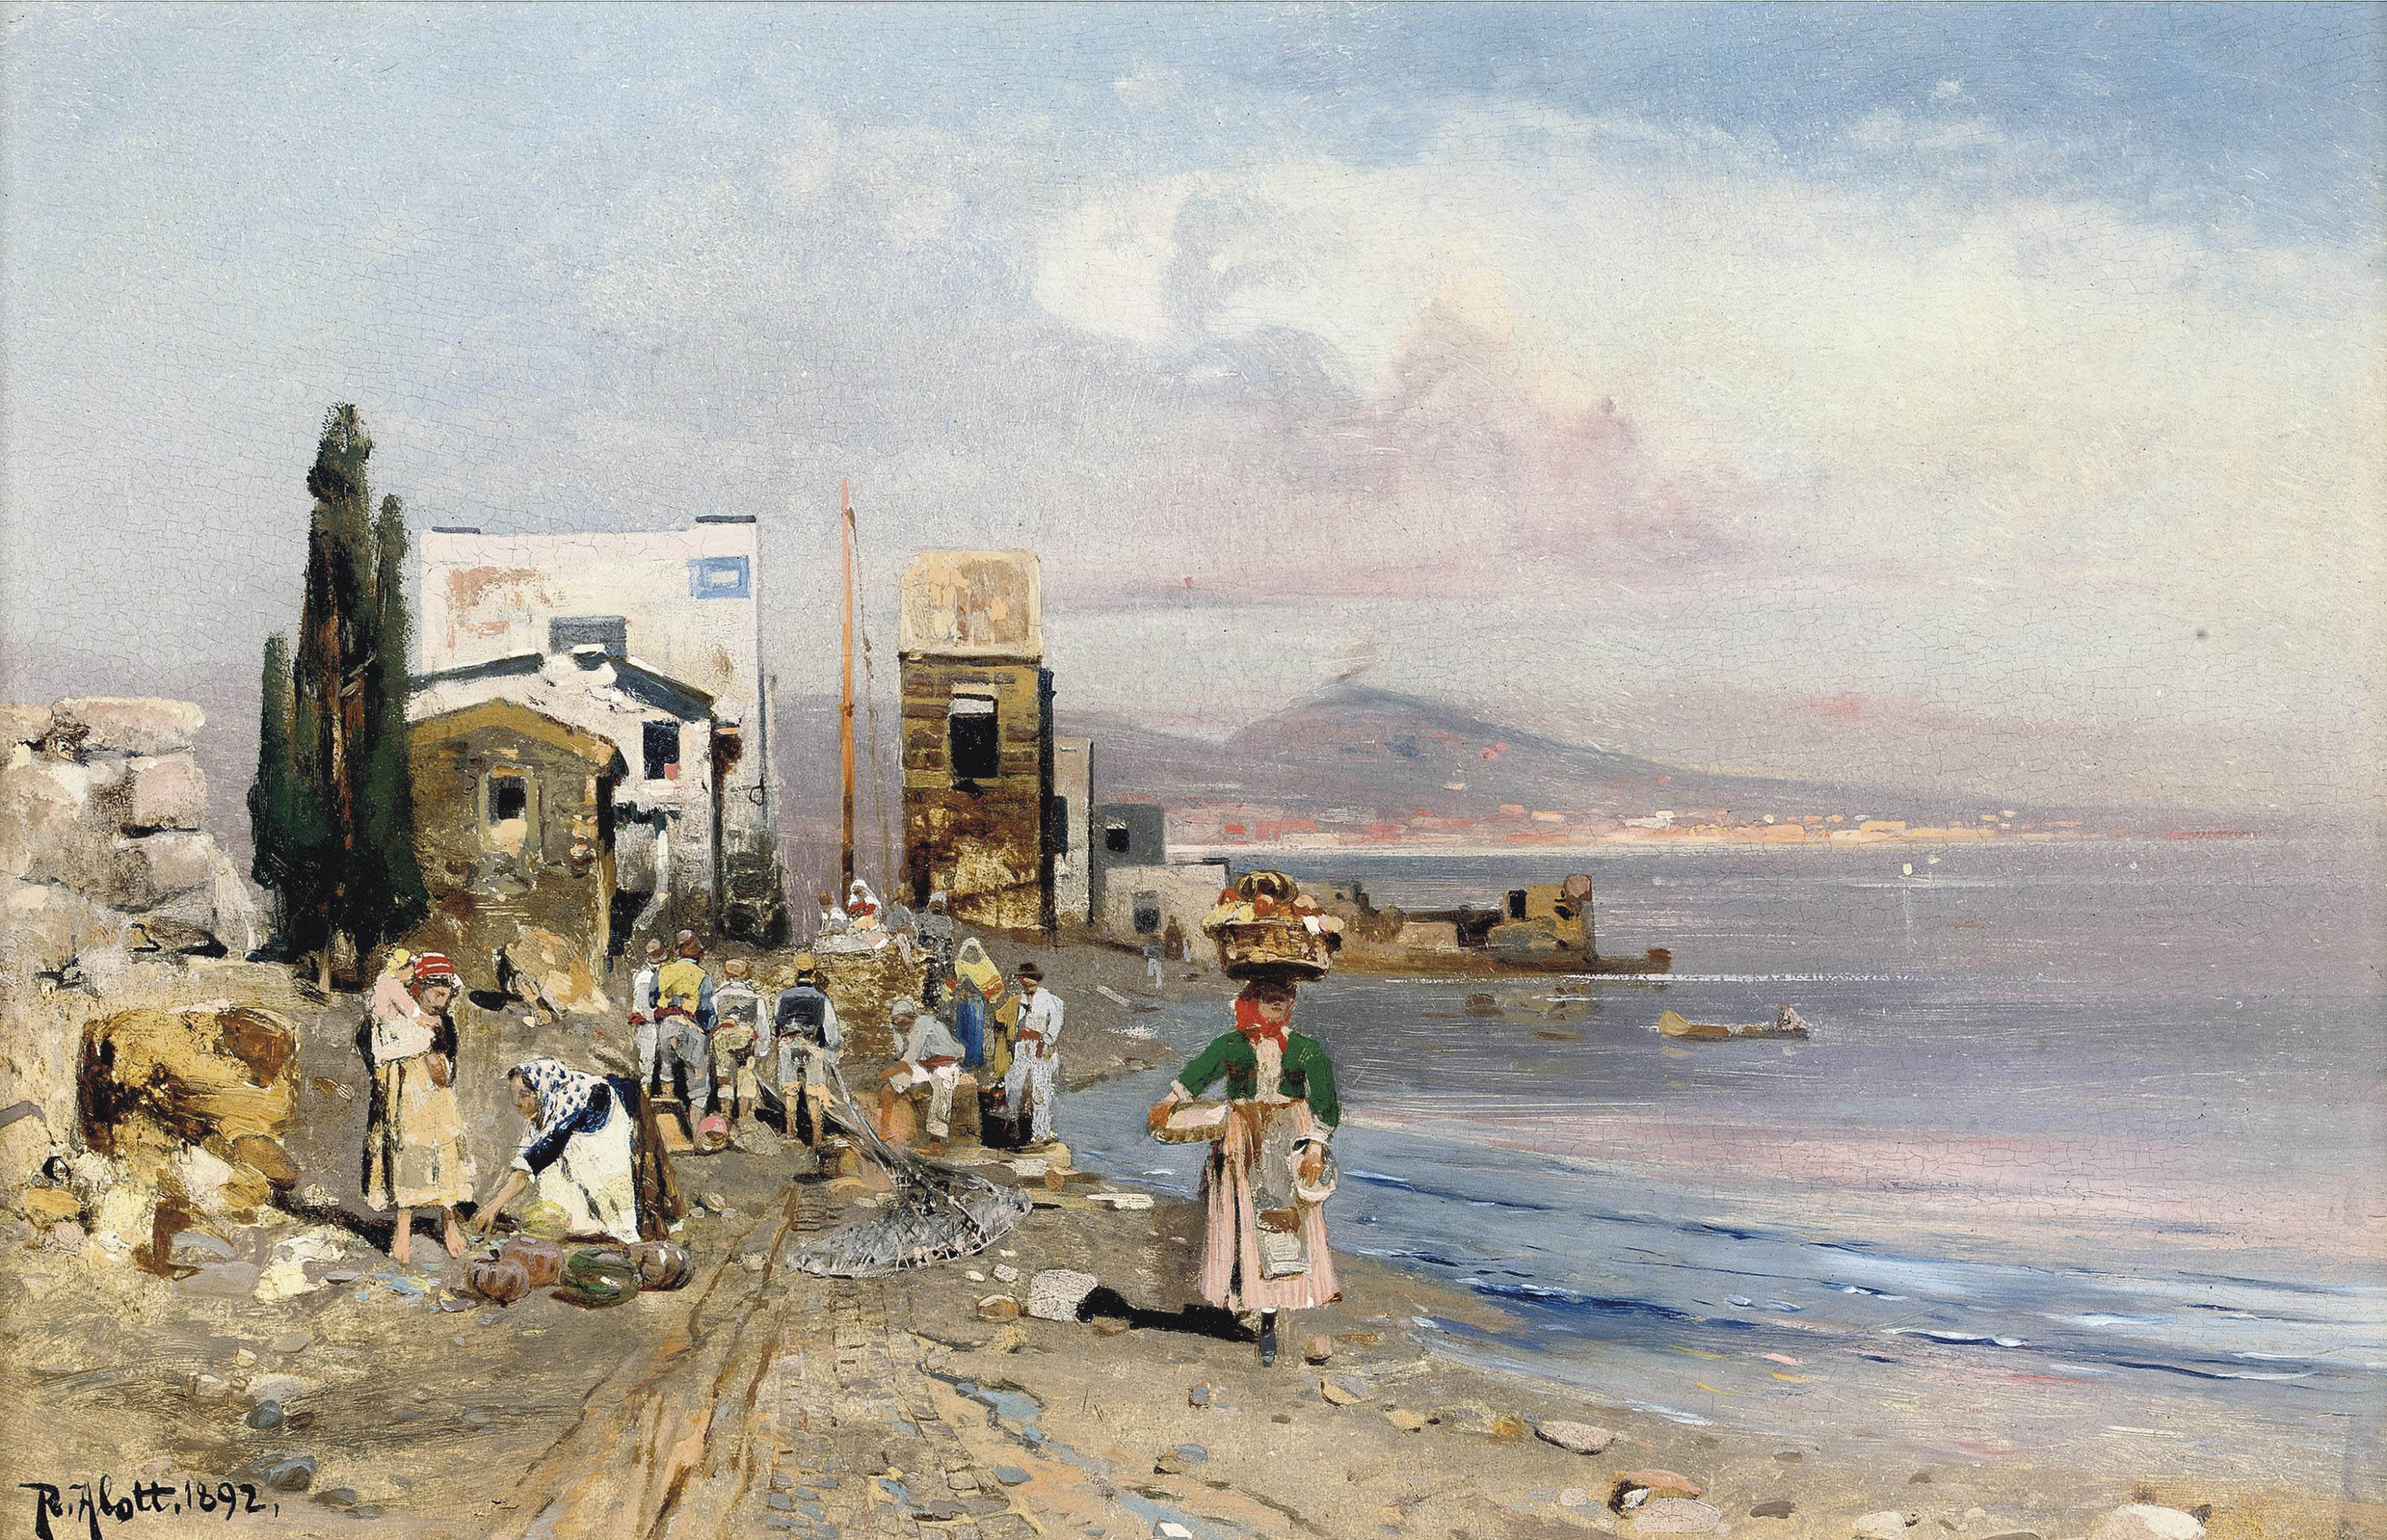 Fisherfolk on the Neapolitan coast